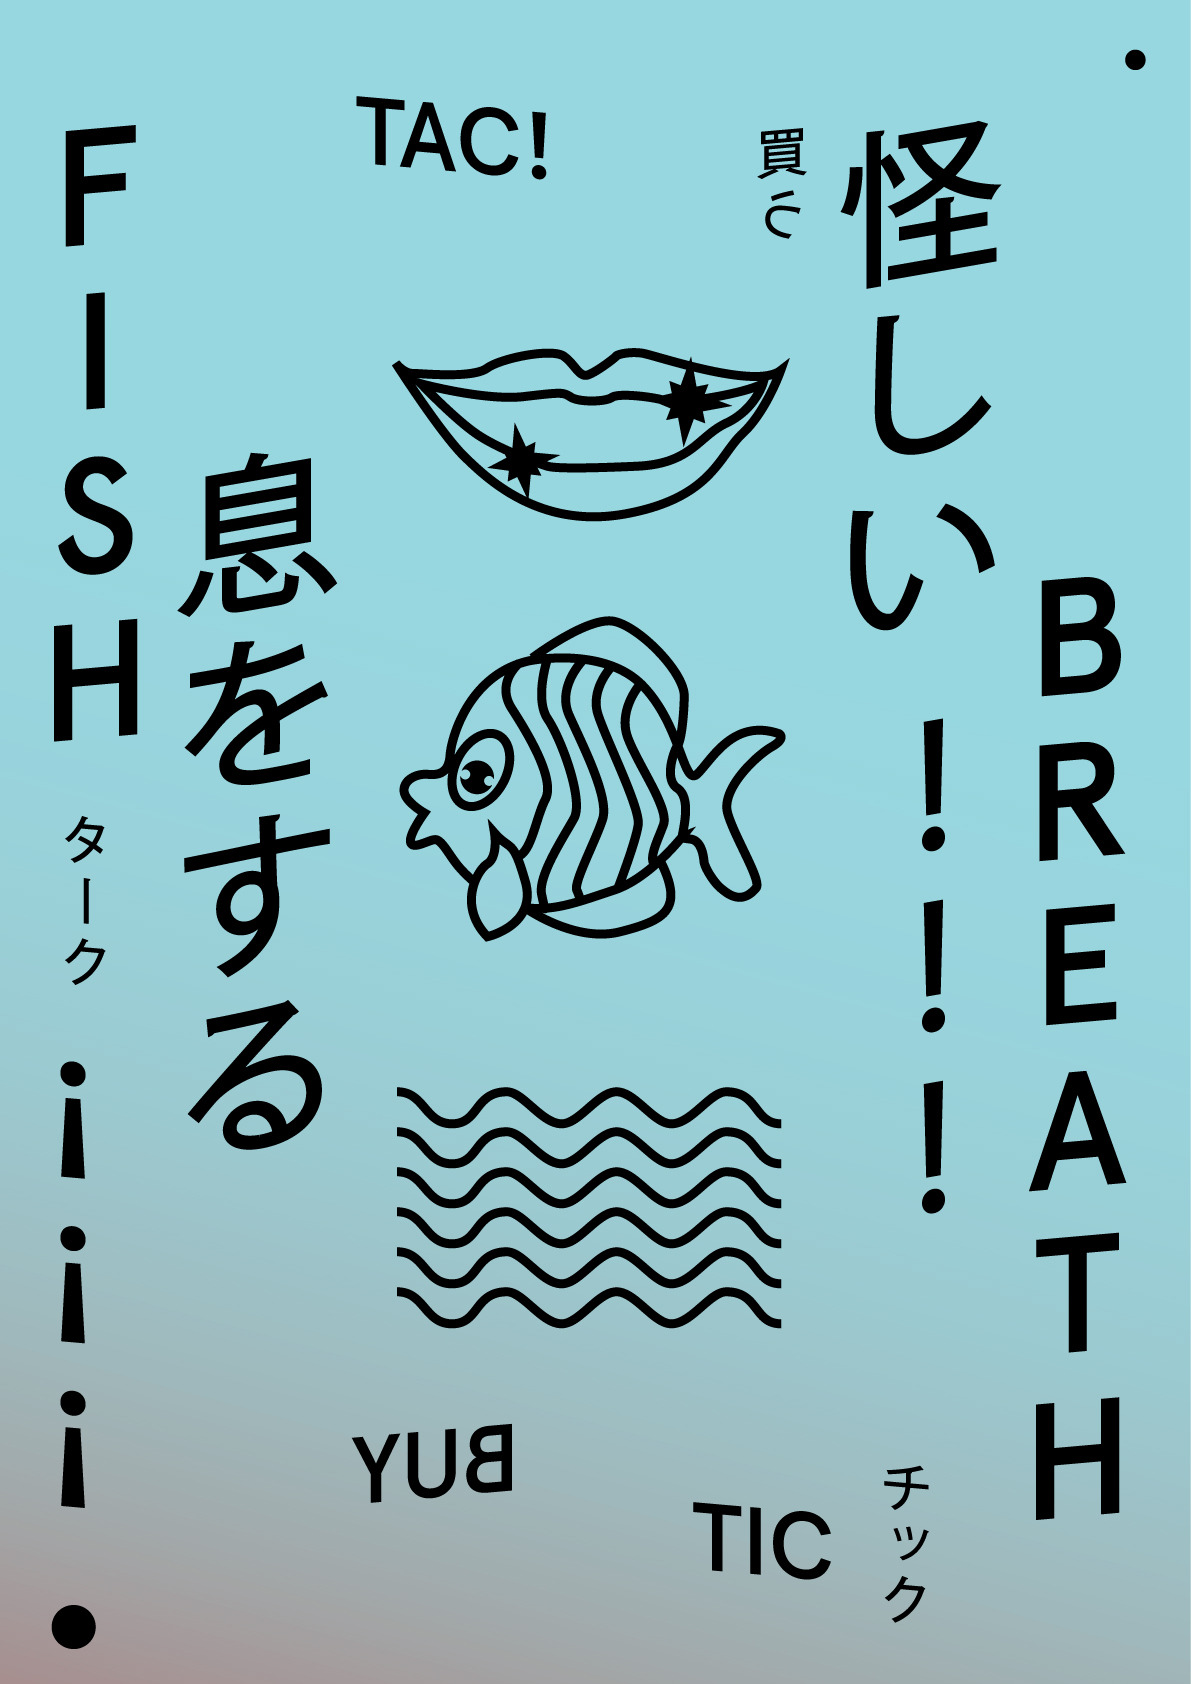 Randomly had an idea for a stupid looking poster about fishbreath. Had to get it out of my system